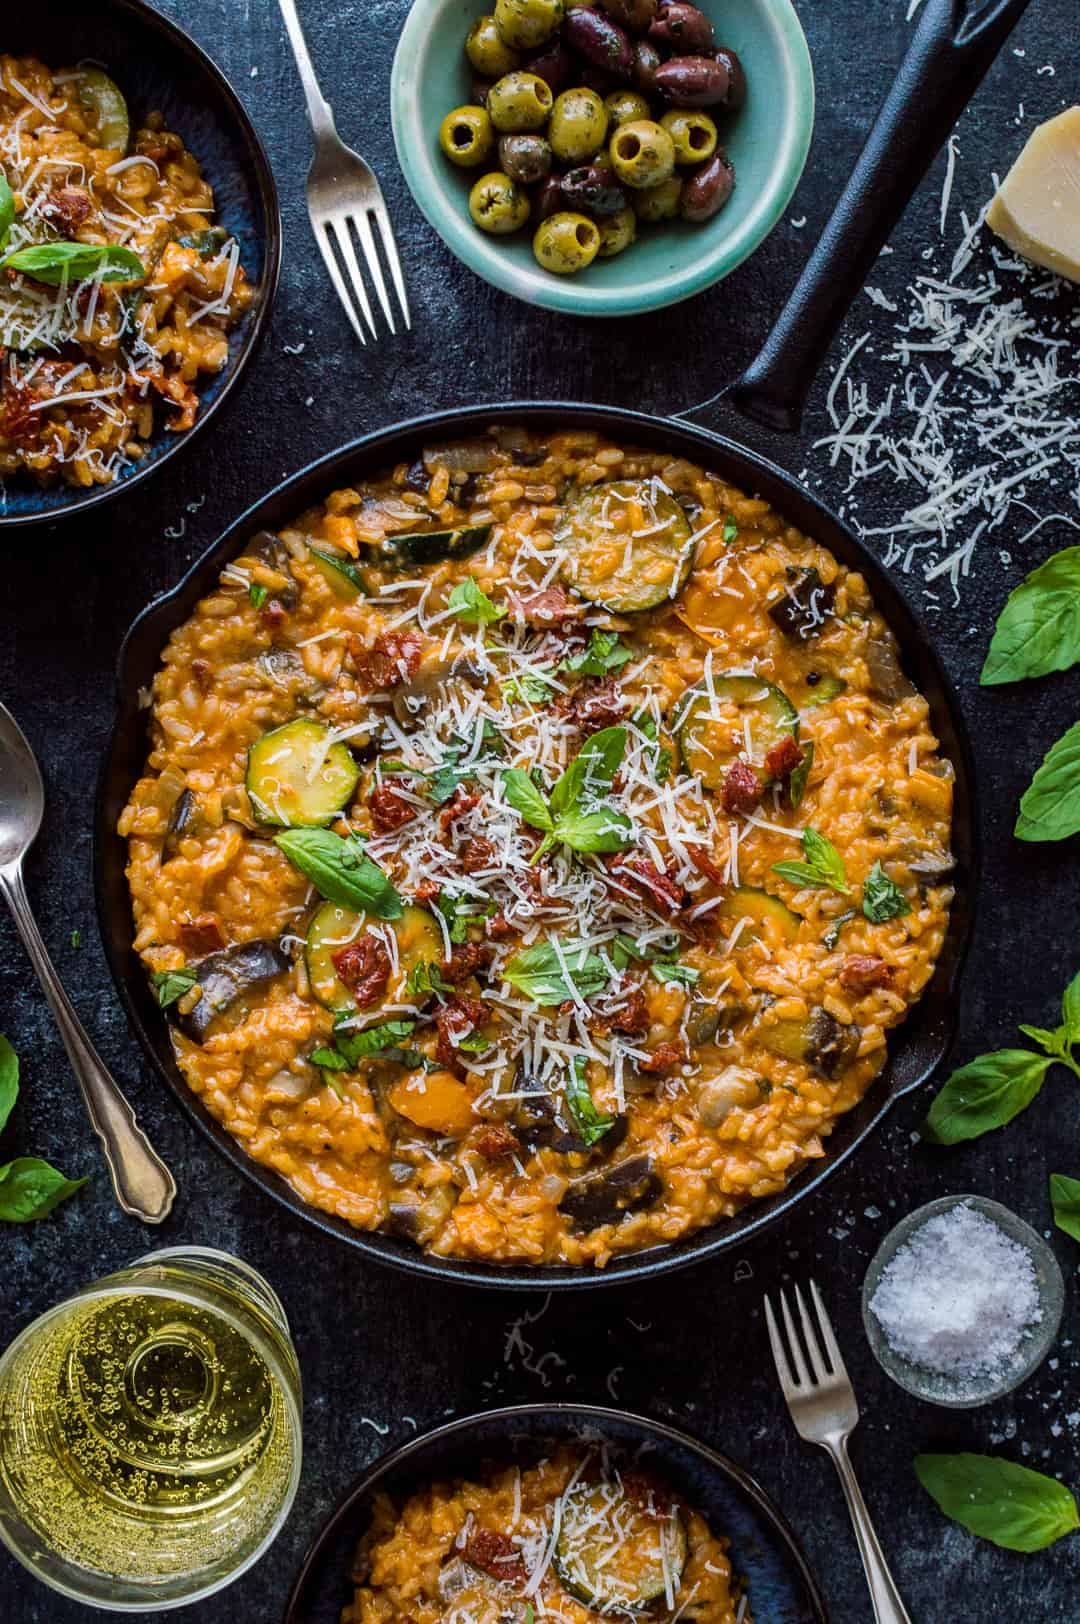 Ratatouille risotto - a creamy, flavourful vegetarian risotto filled with ratatouille vegetables, herbs, sundried tomatoes and veggie parmesan.